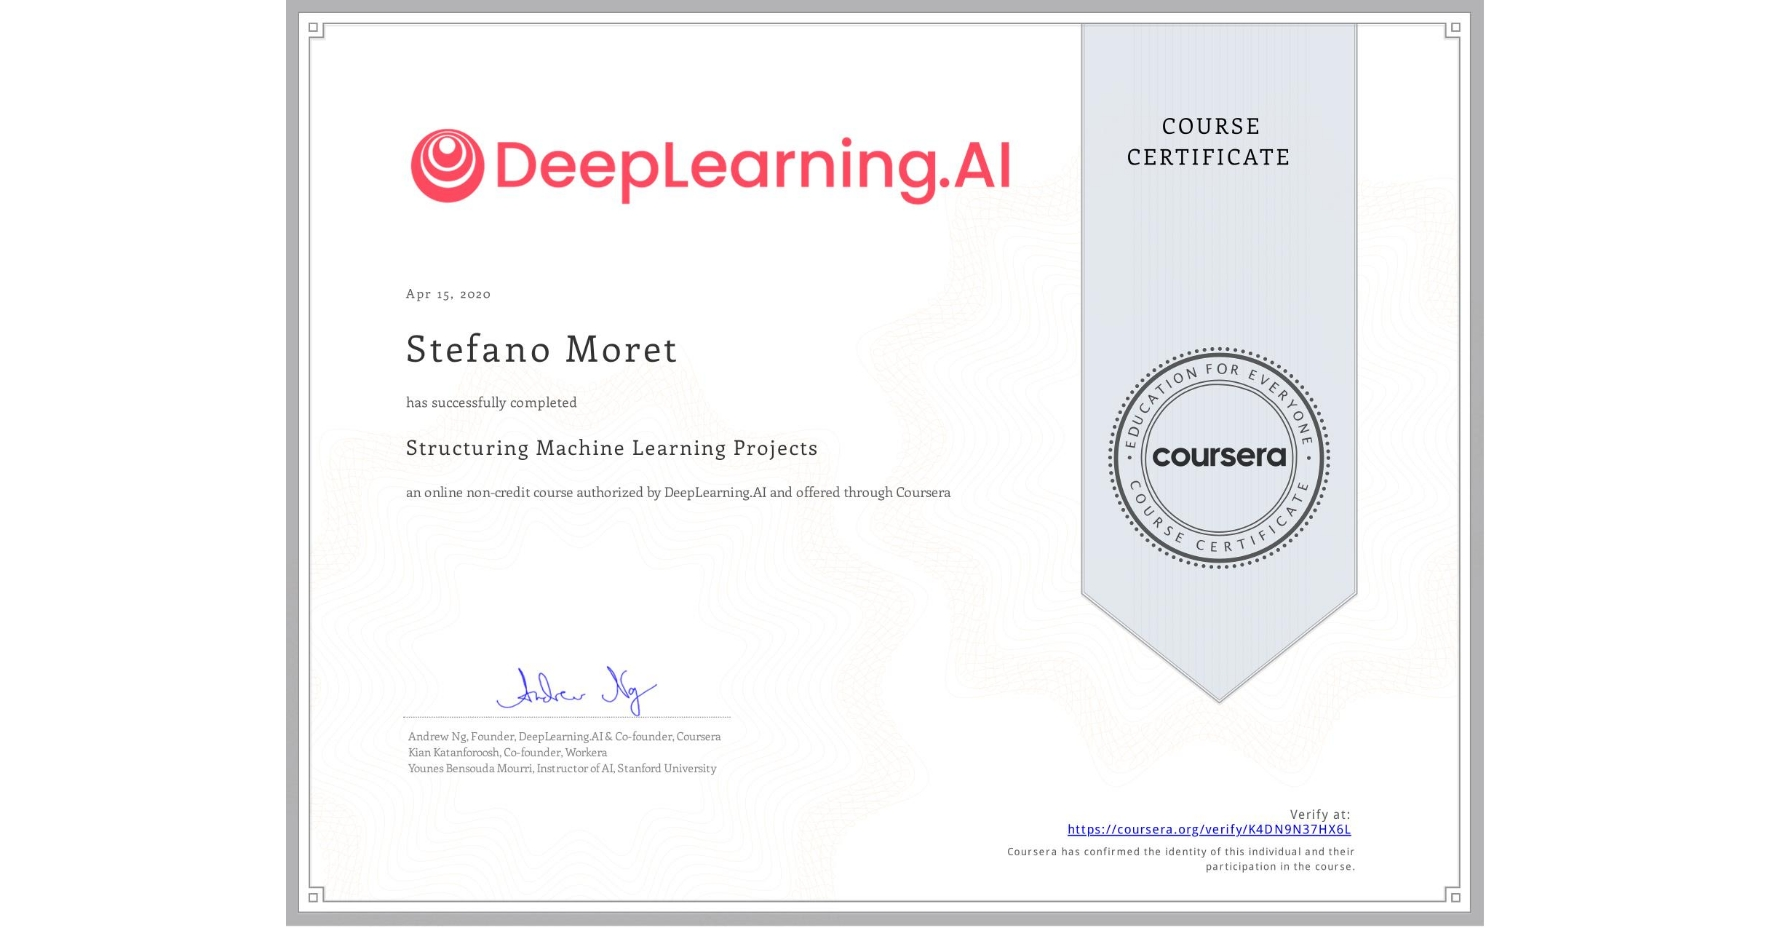 View certificate for Stefano Moret, Structuring Machine Learning Projects, an online non-credit course authorized by DeepLearning.AI and offered through Coursera